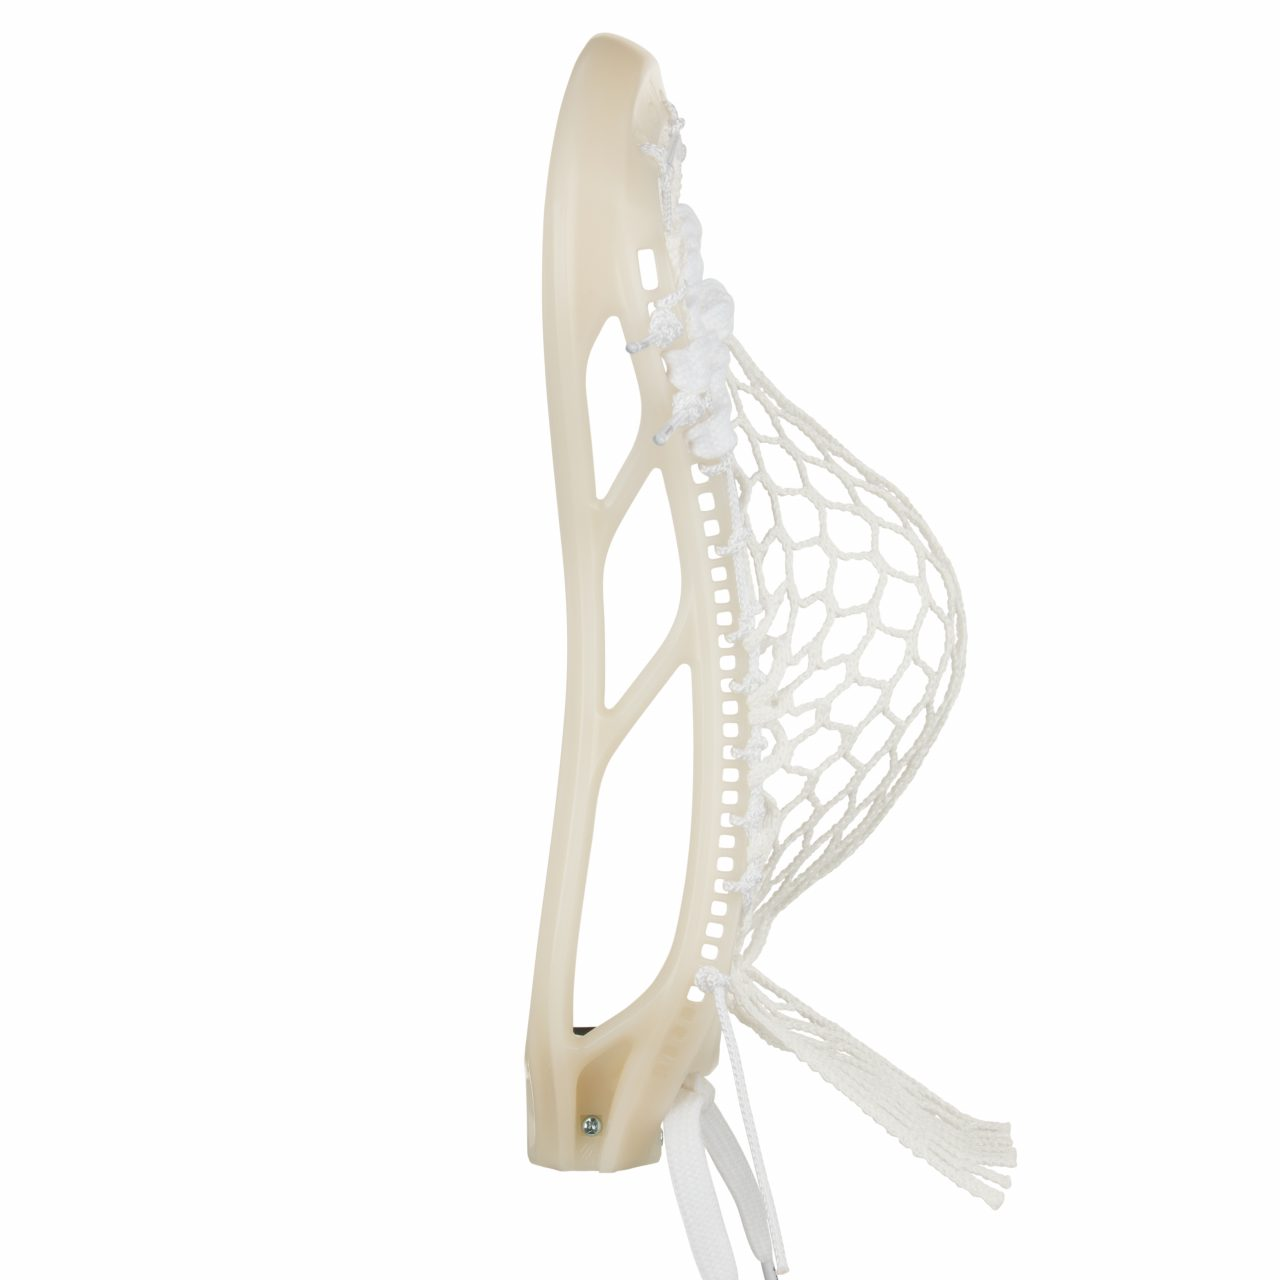 StringKing Mark 2F Face Off Lacrosse Head Strung Raw White Pocket Side View